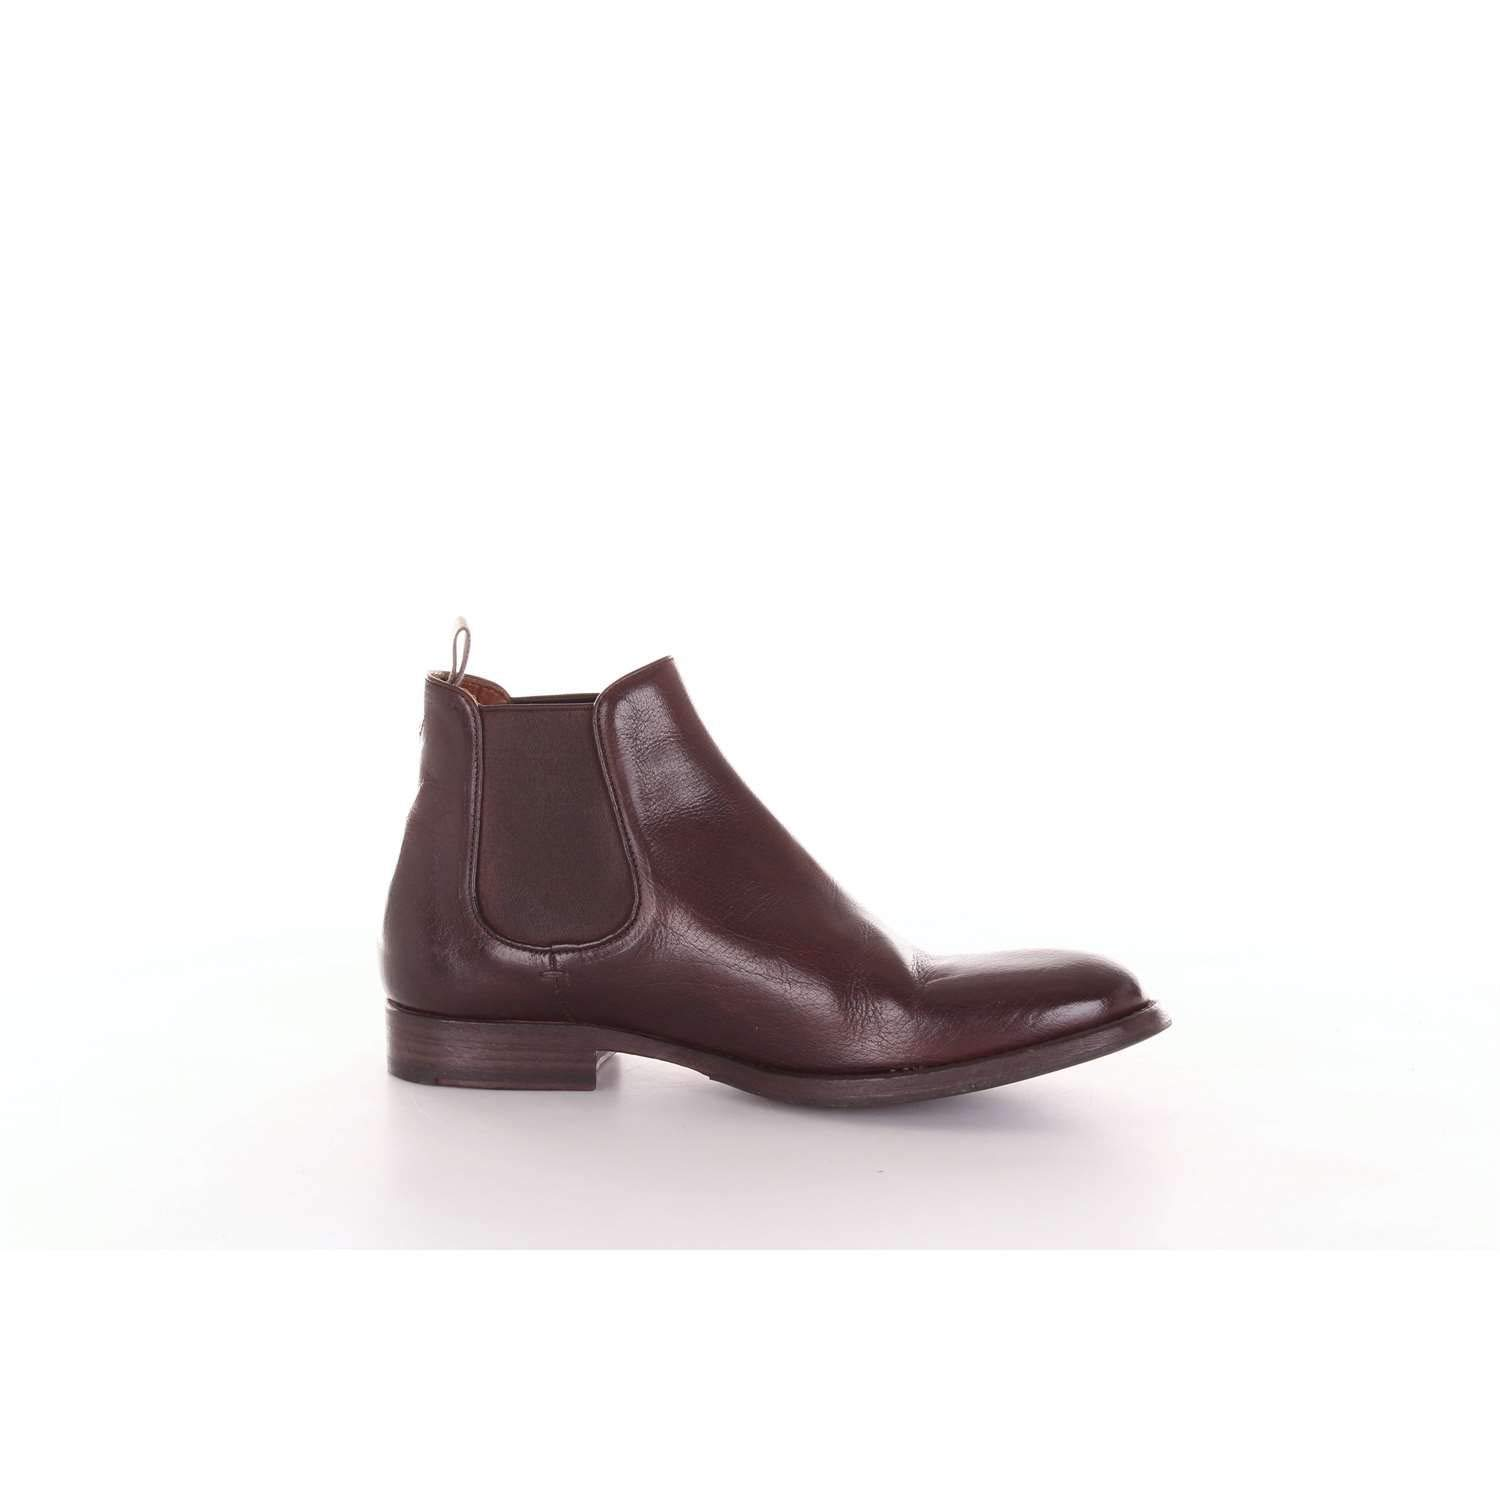 - PANTANETTI Men's 10940DDARKBROWN Brown Leather Ankle Boots